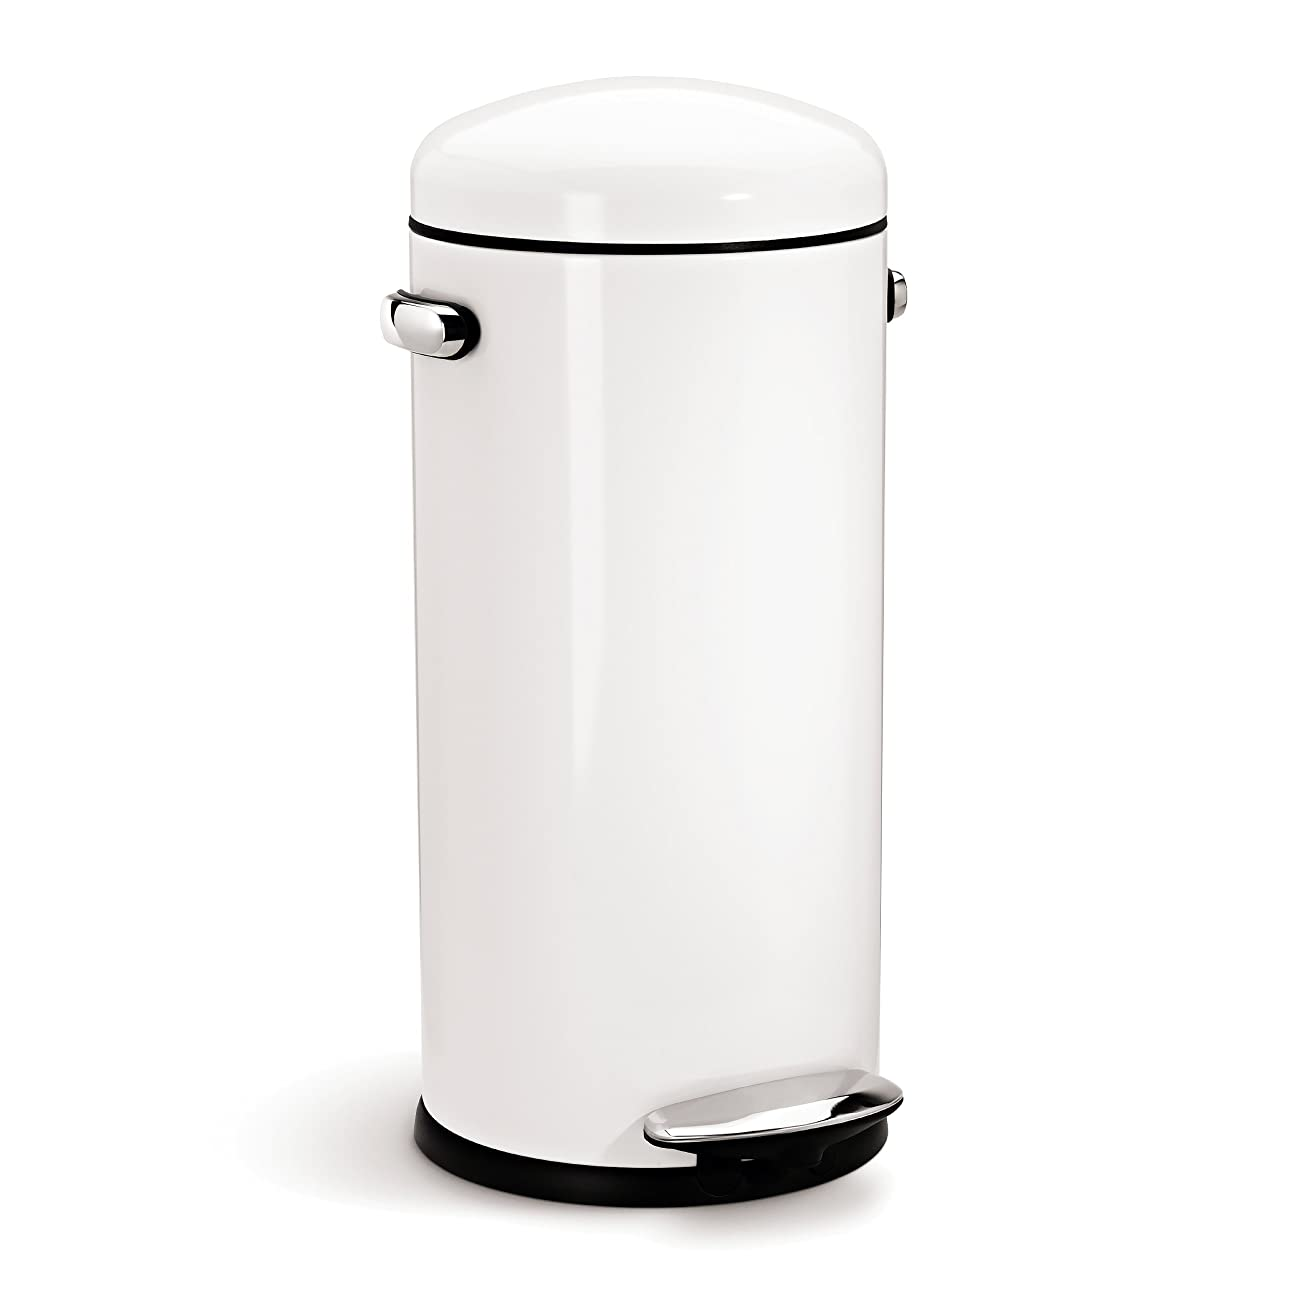 Simplehuman Round Retro Step Trash Can White Steel 30 L